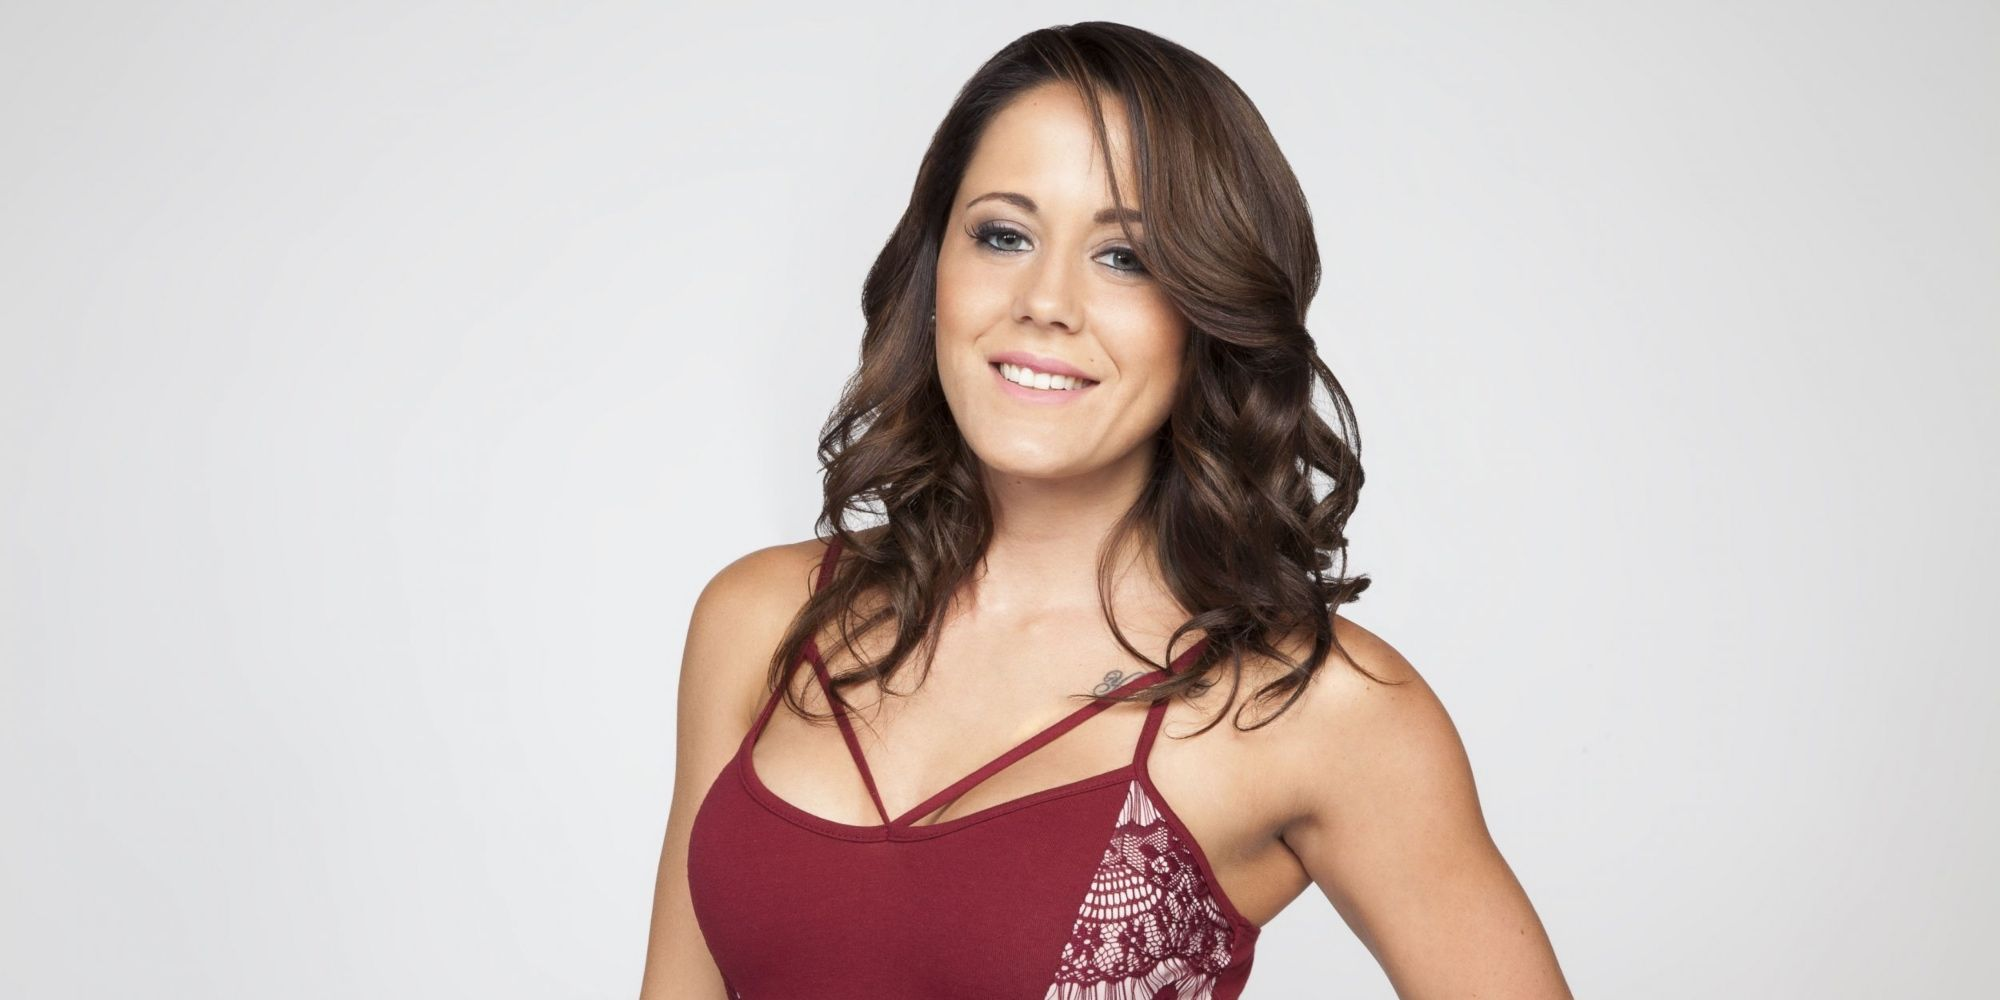 Jenelle Evans Says She Wasn't Fired from Teen Mom After All